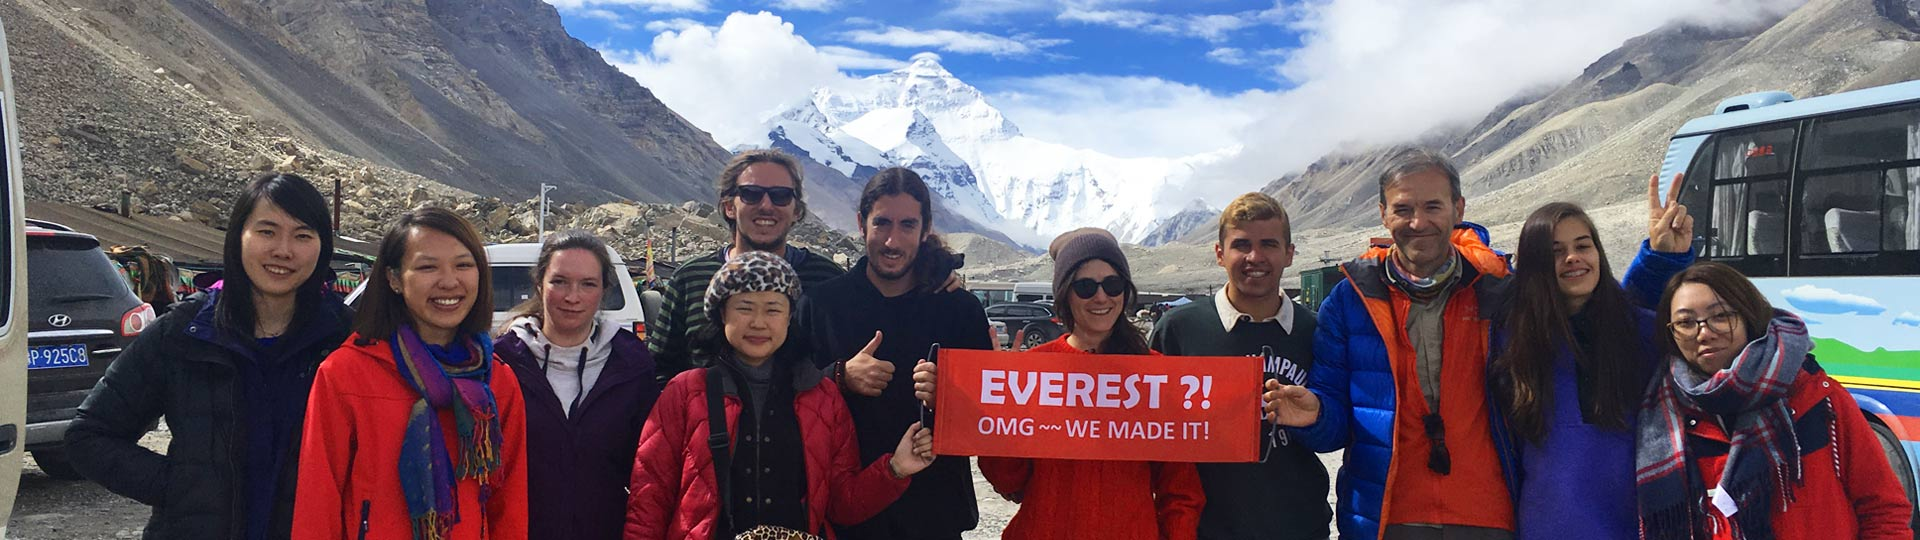 Everest Base Camp Tour Guide